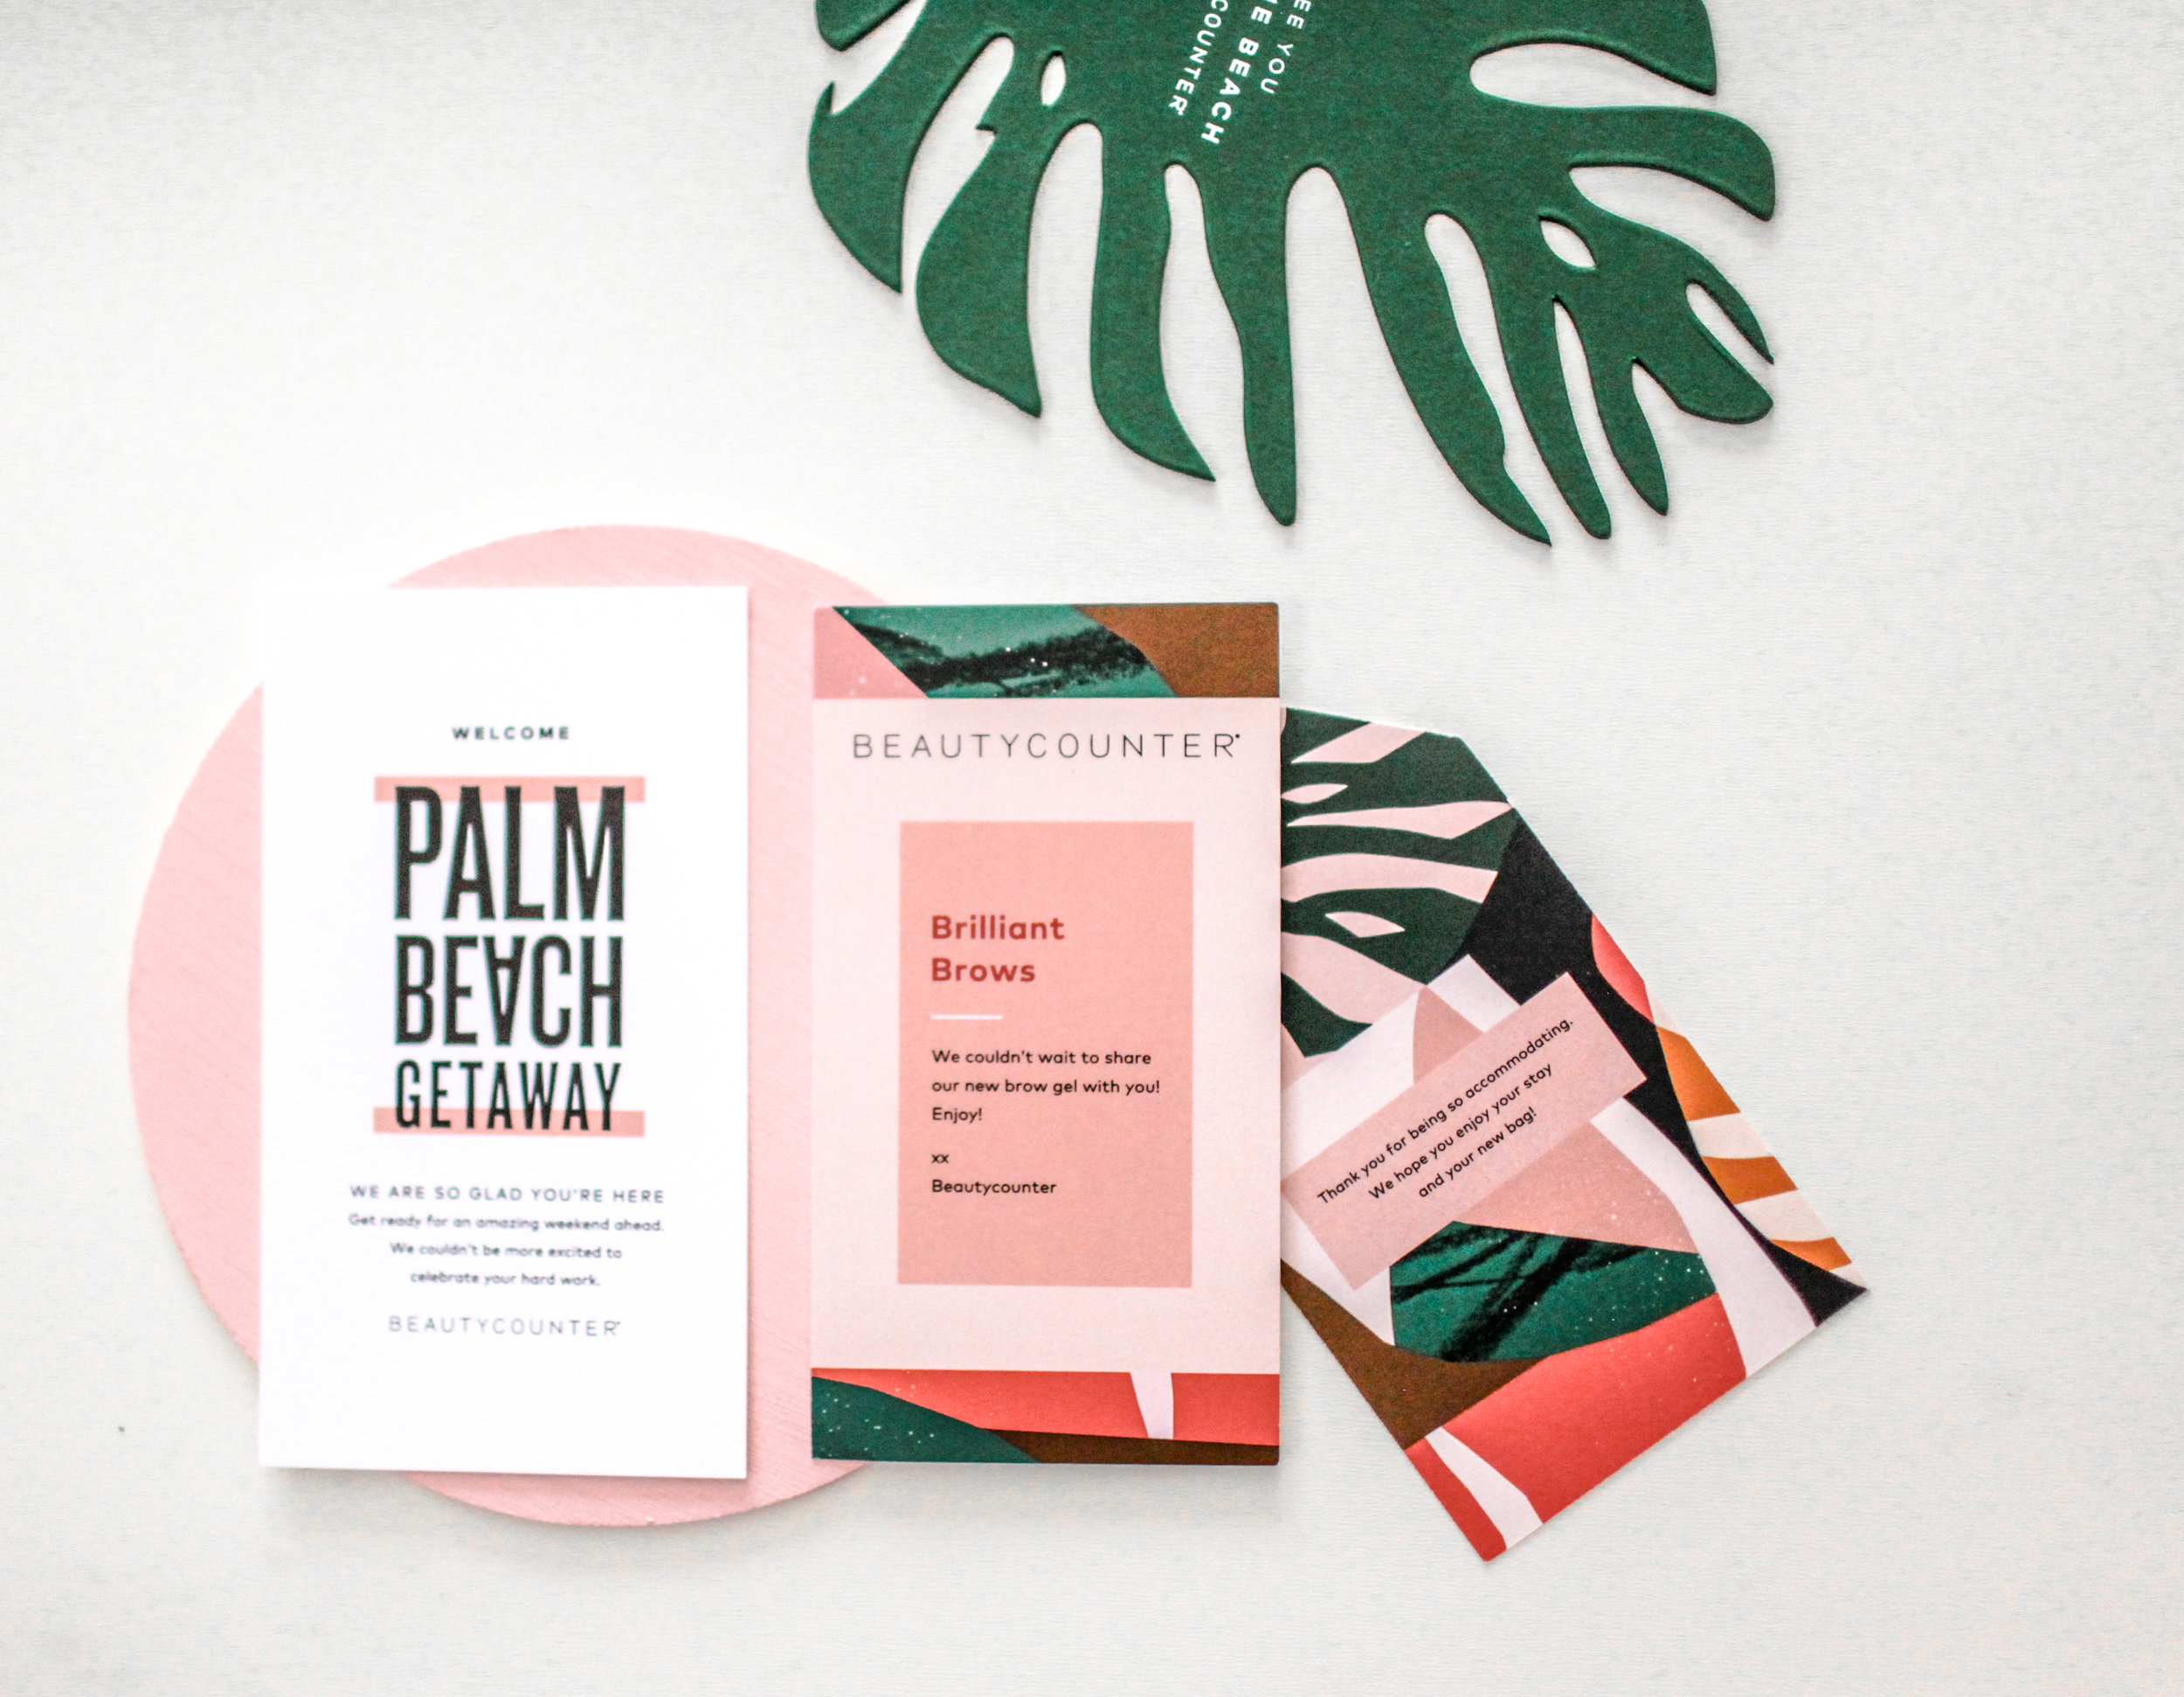 PALM BEACH GETAWAY  | ART DIRECTION | EVENT DESIGN | PRINT & DIGITAL